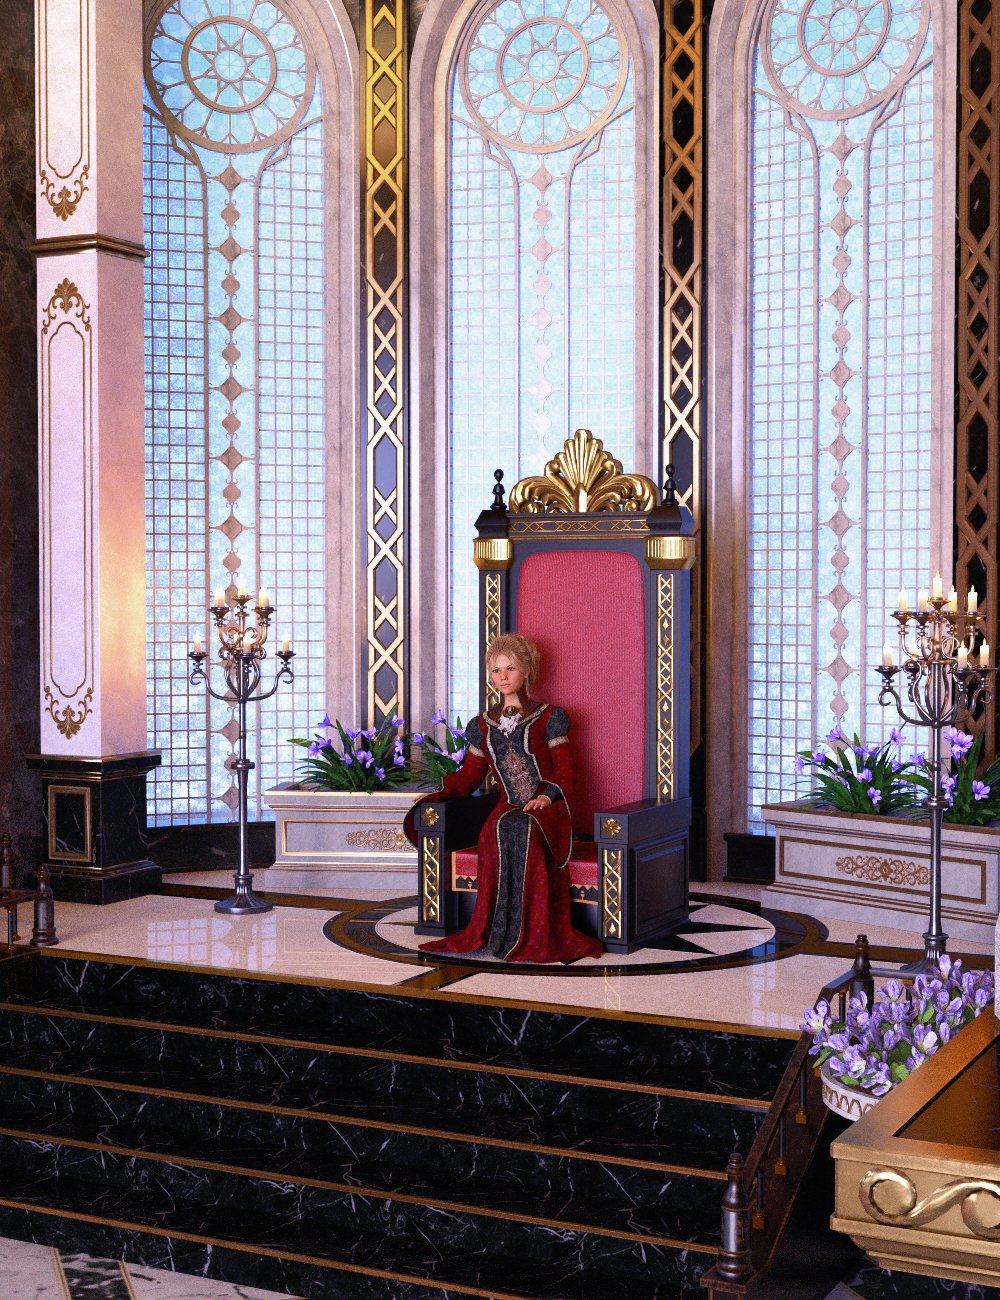 Palace by: Charles, 3D Models by Daz 3D